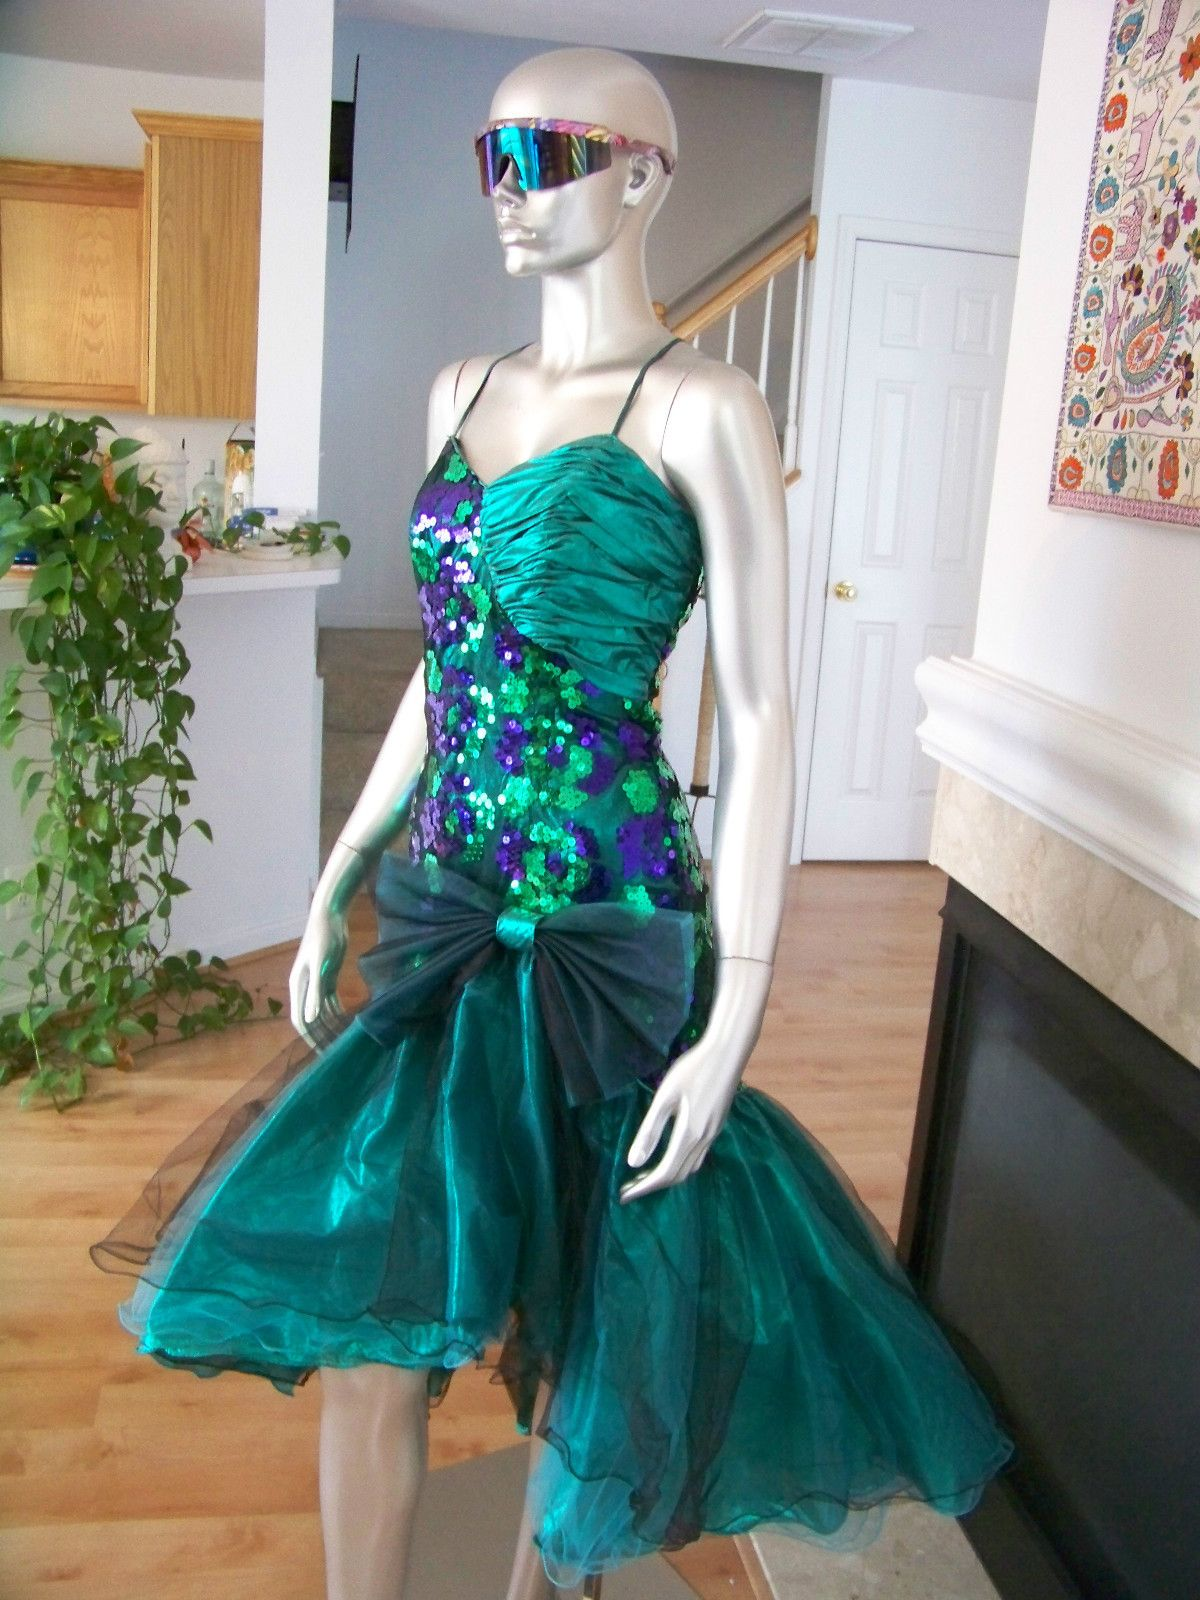 80s prom dress material girl. I actually kind of love this